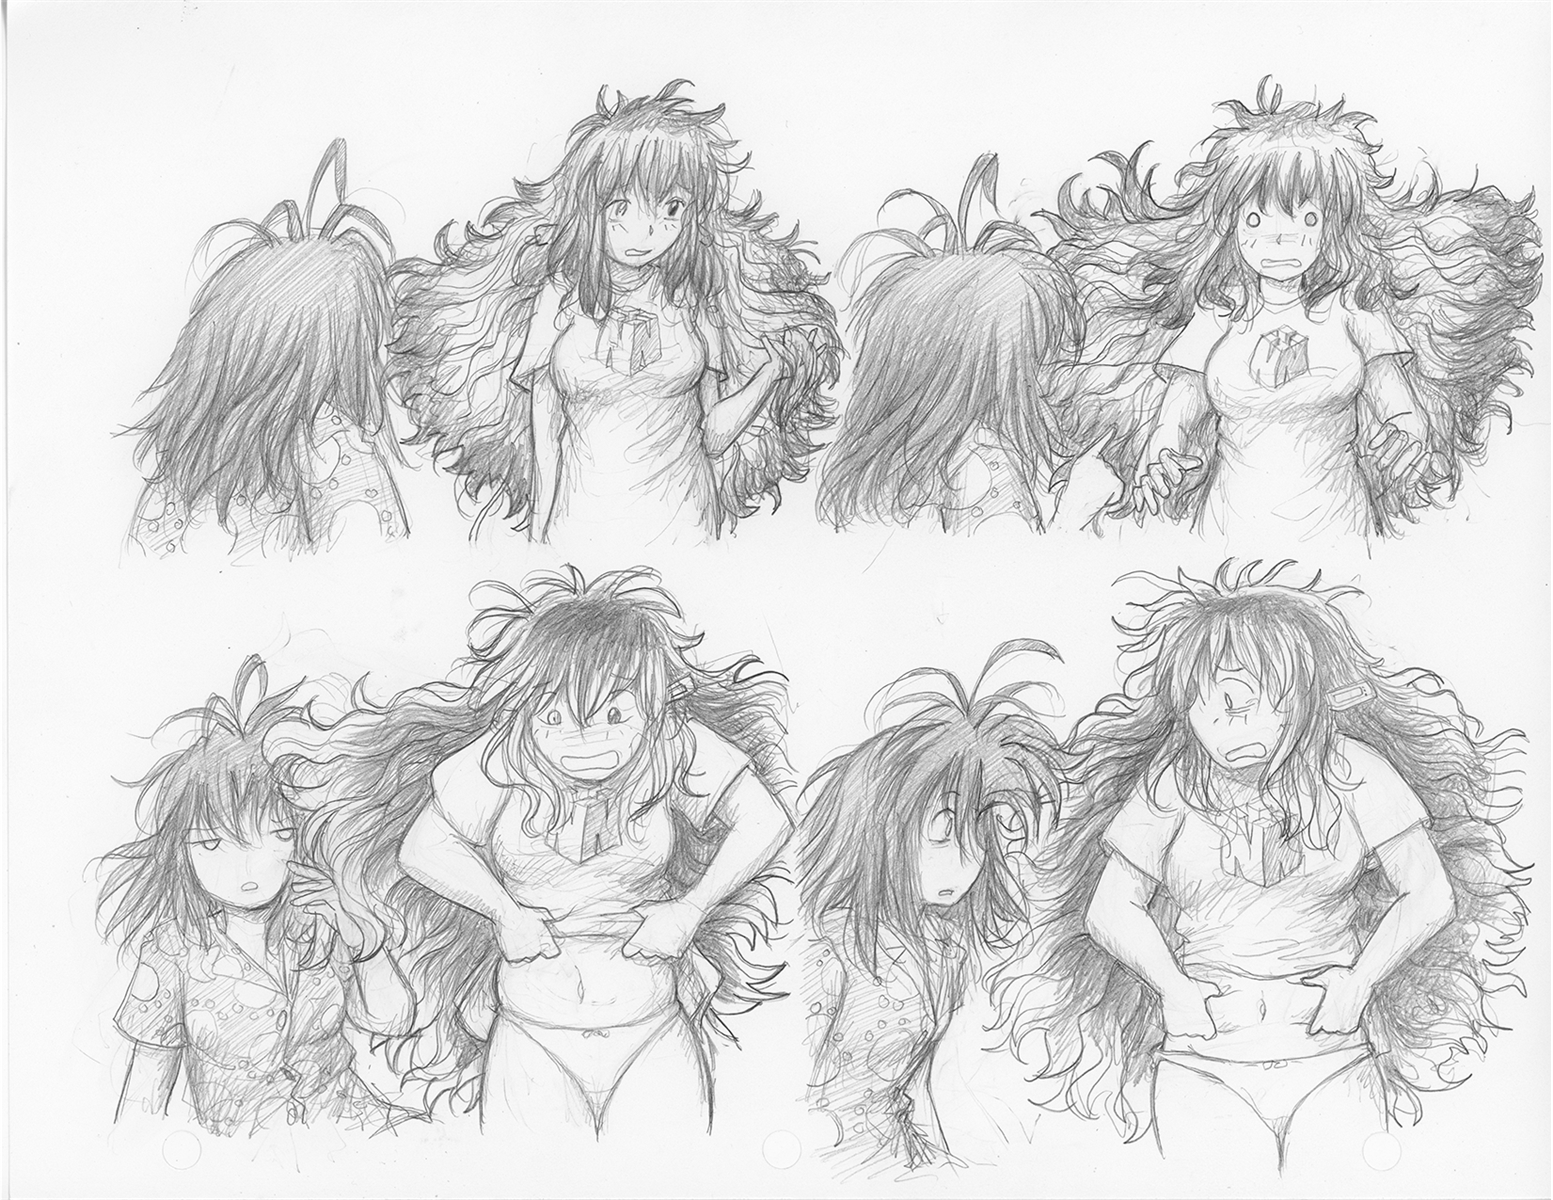 Original megatokyo pencil drawing comic 1487 chapter 12 ep 52 sheet b